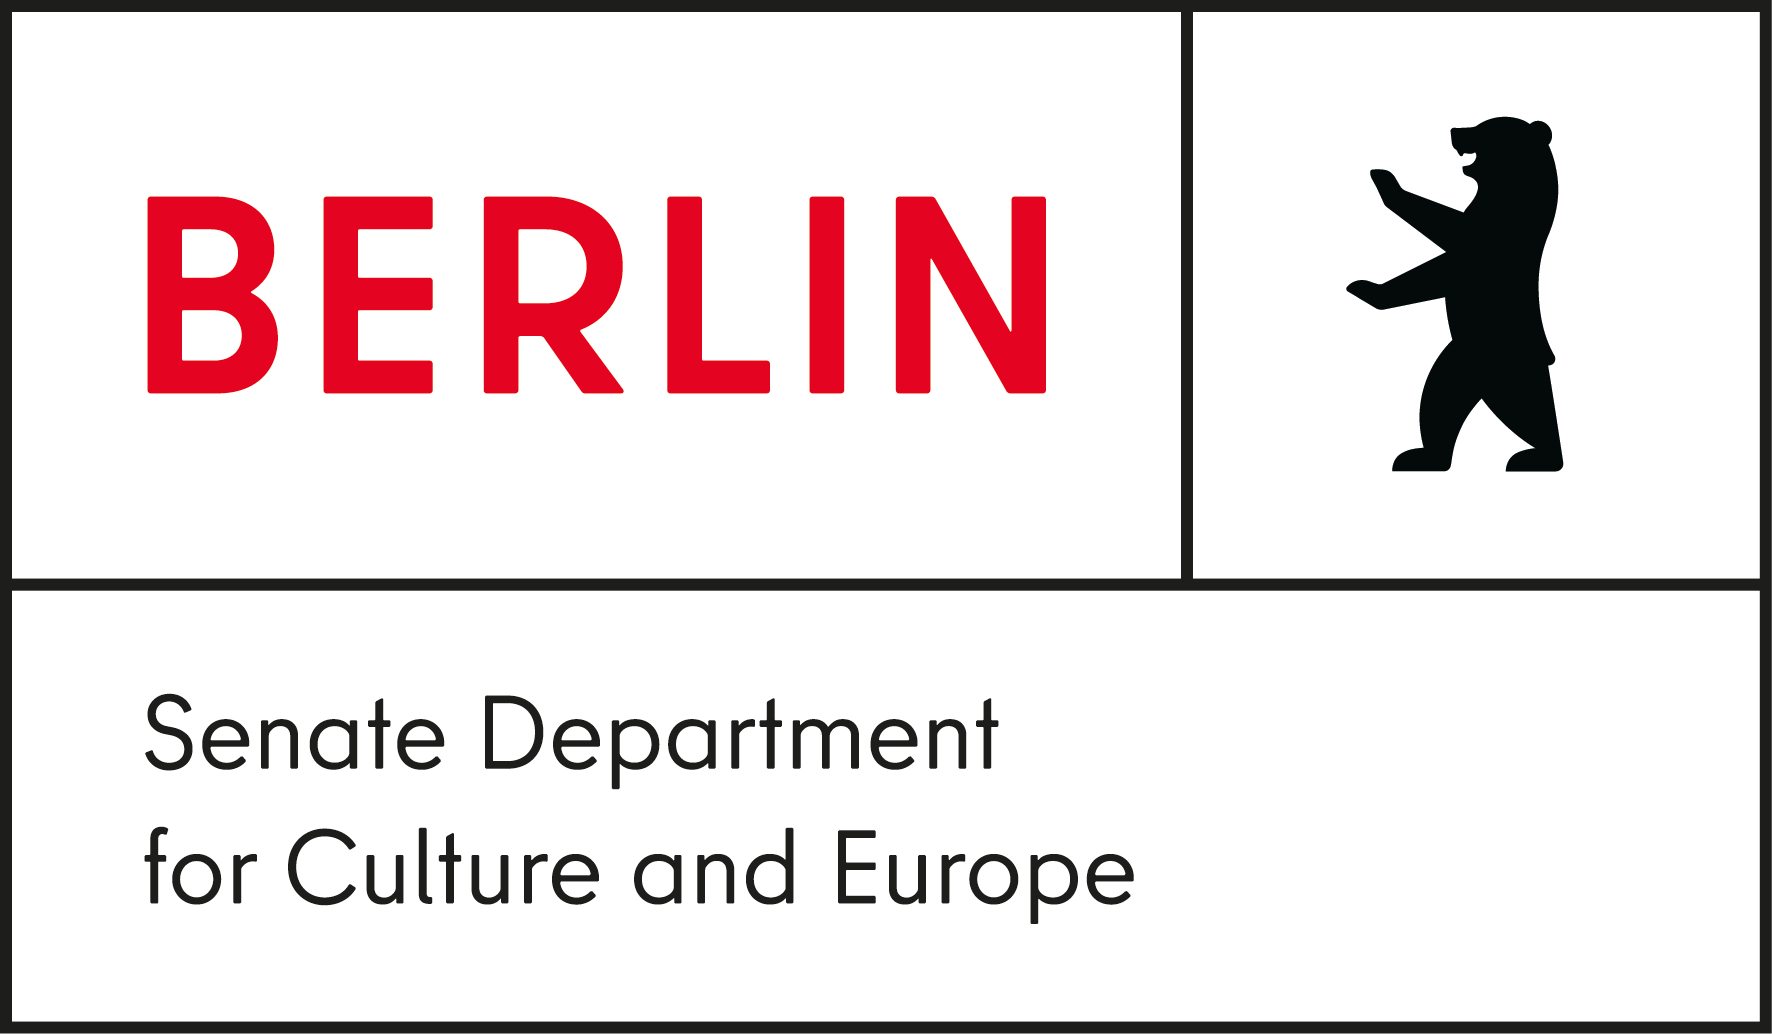 Logo: Senate Department for Culture and Europe Berlin